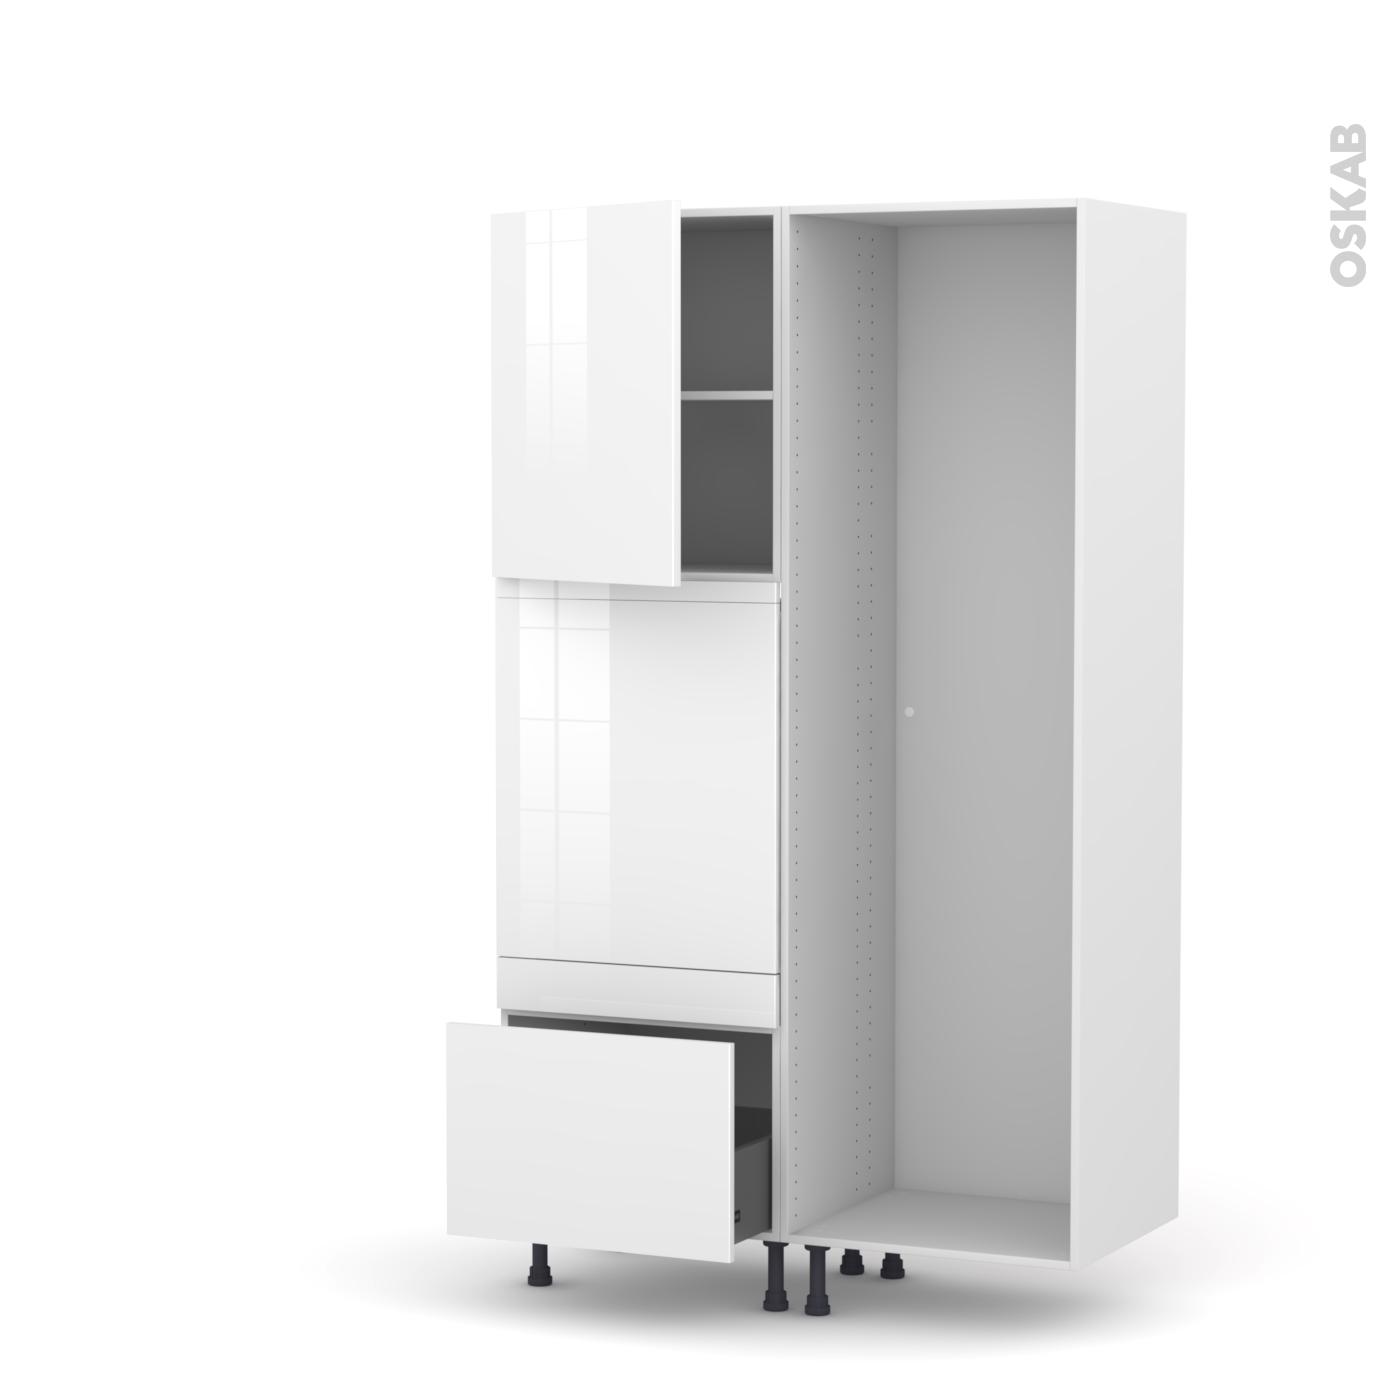 Frigo Encastrable Liebherr Simple Colonne Frigo Encastrable With Colonne Frigo